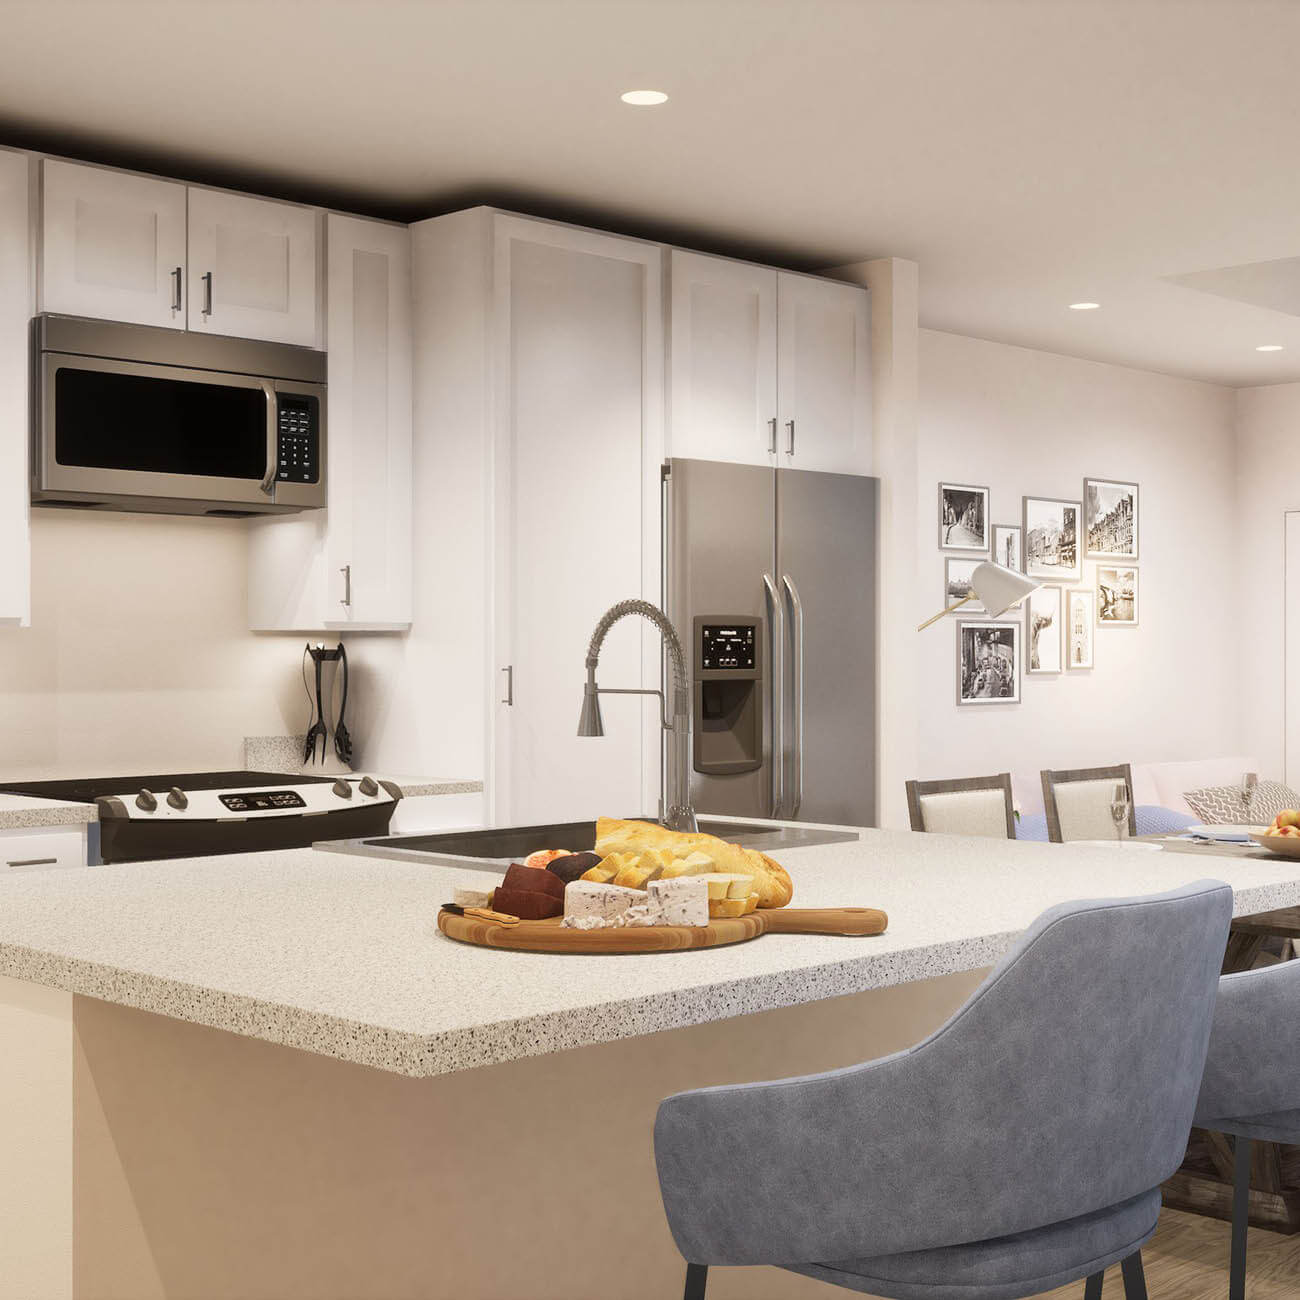 3D Rendering of apartment kitchen